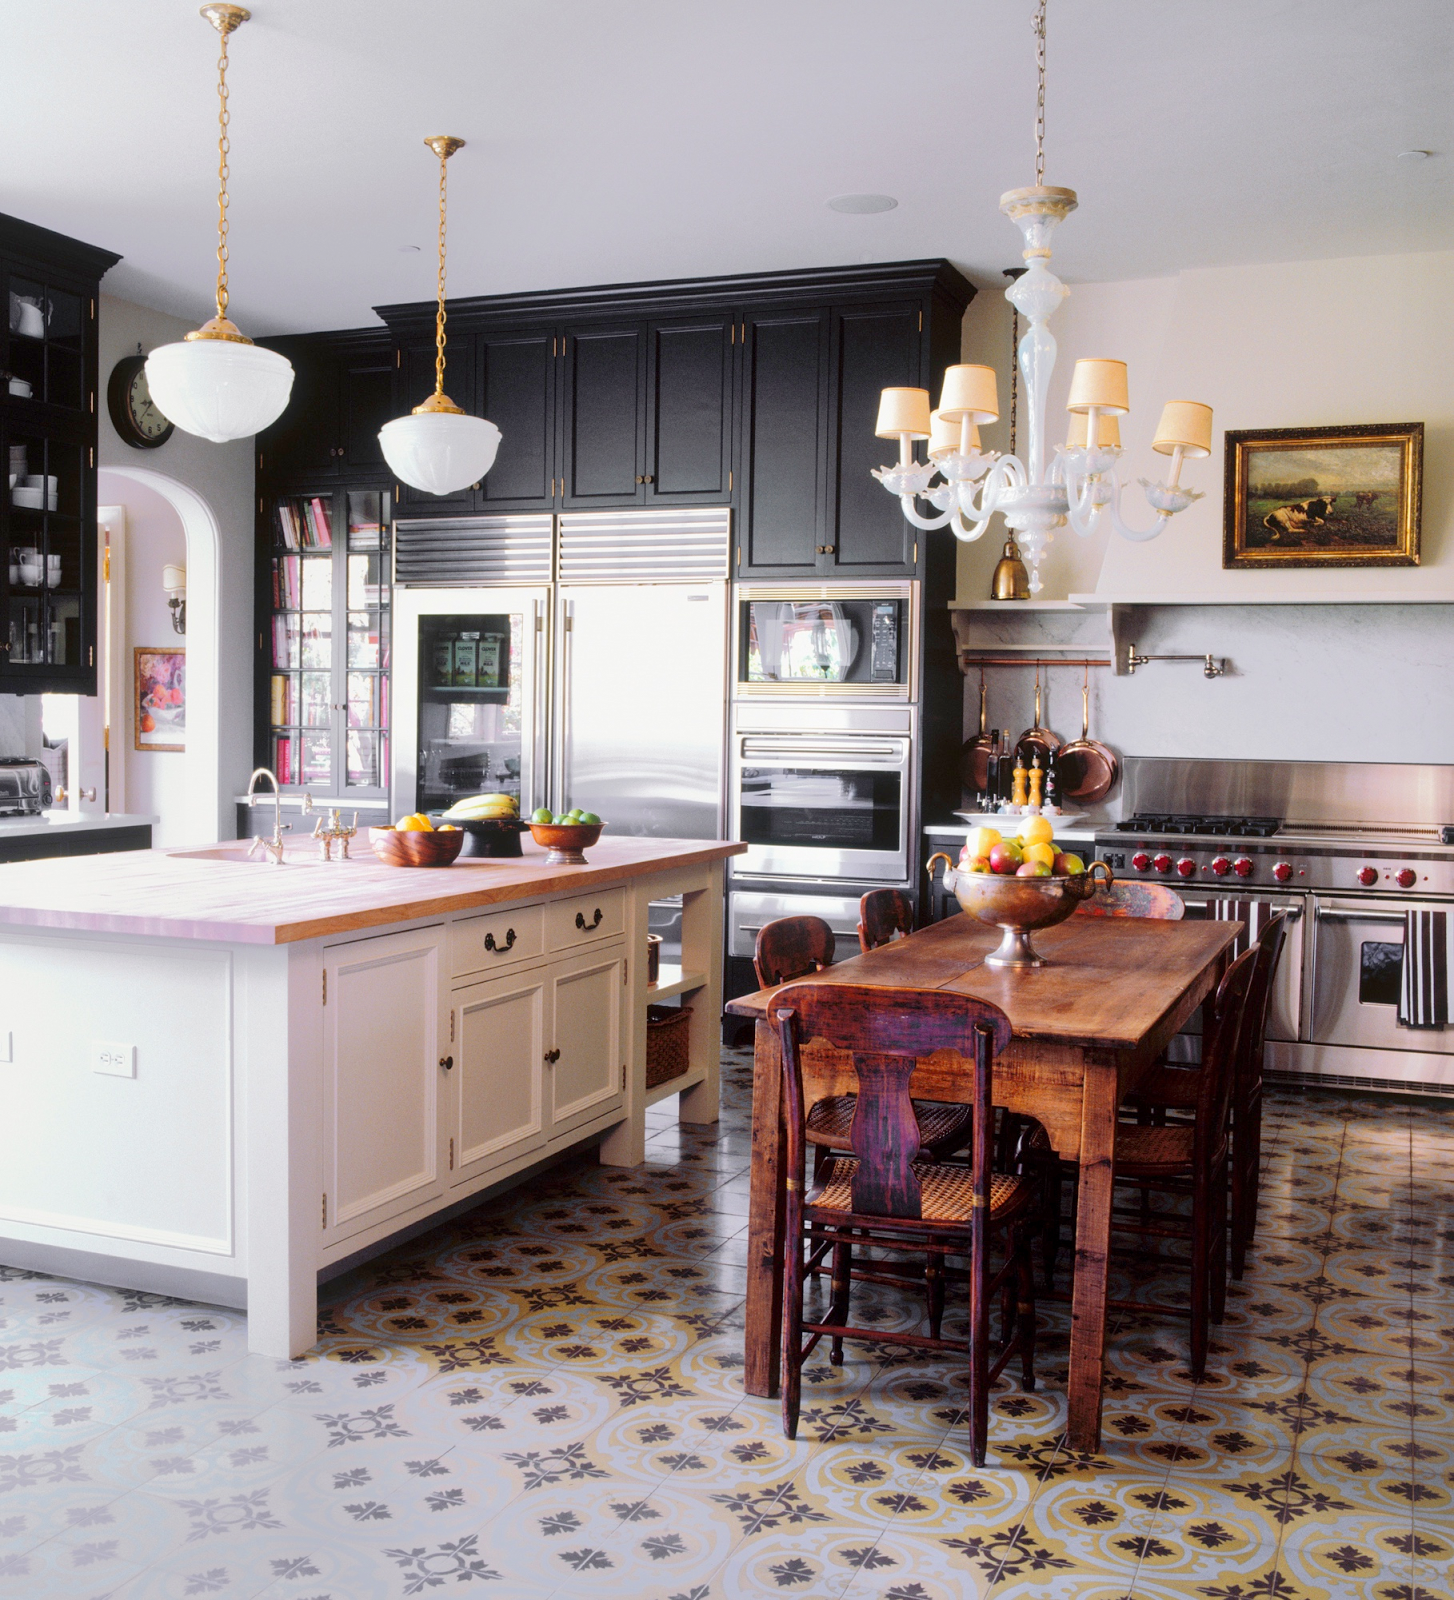 image46.png] | Home | Pinterest | Kitchens, Traditional kitchen ...